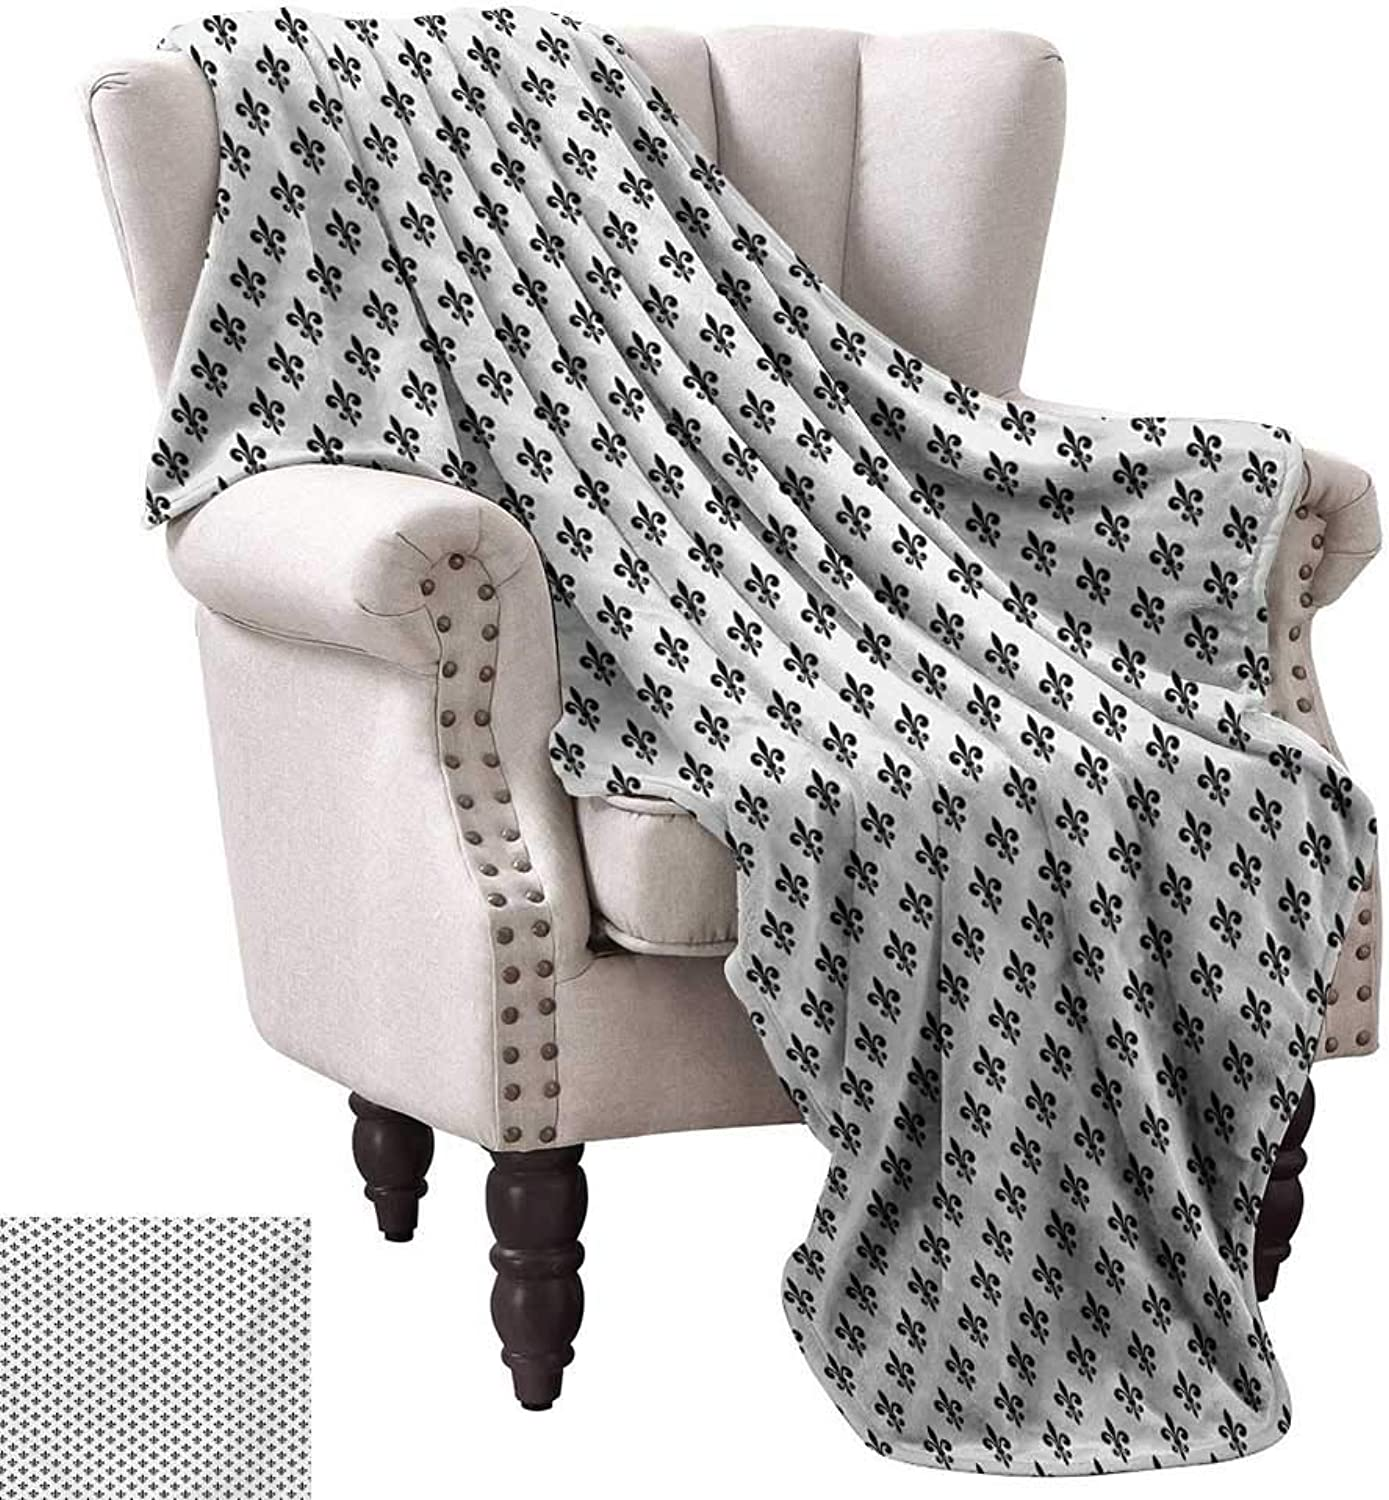 Lightweight Blanket,Royal Lily Pattern Antique Style Medieval Symbol Vintage Monochrome Ornament 90 x70 ,Super Soft and Comfortable,Suitable for Sofas,Chairs,beds